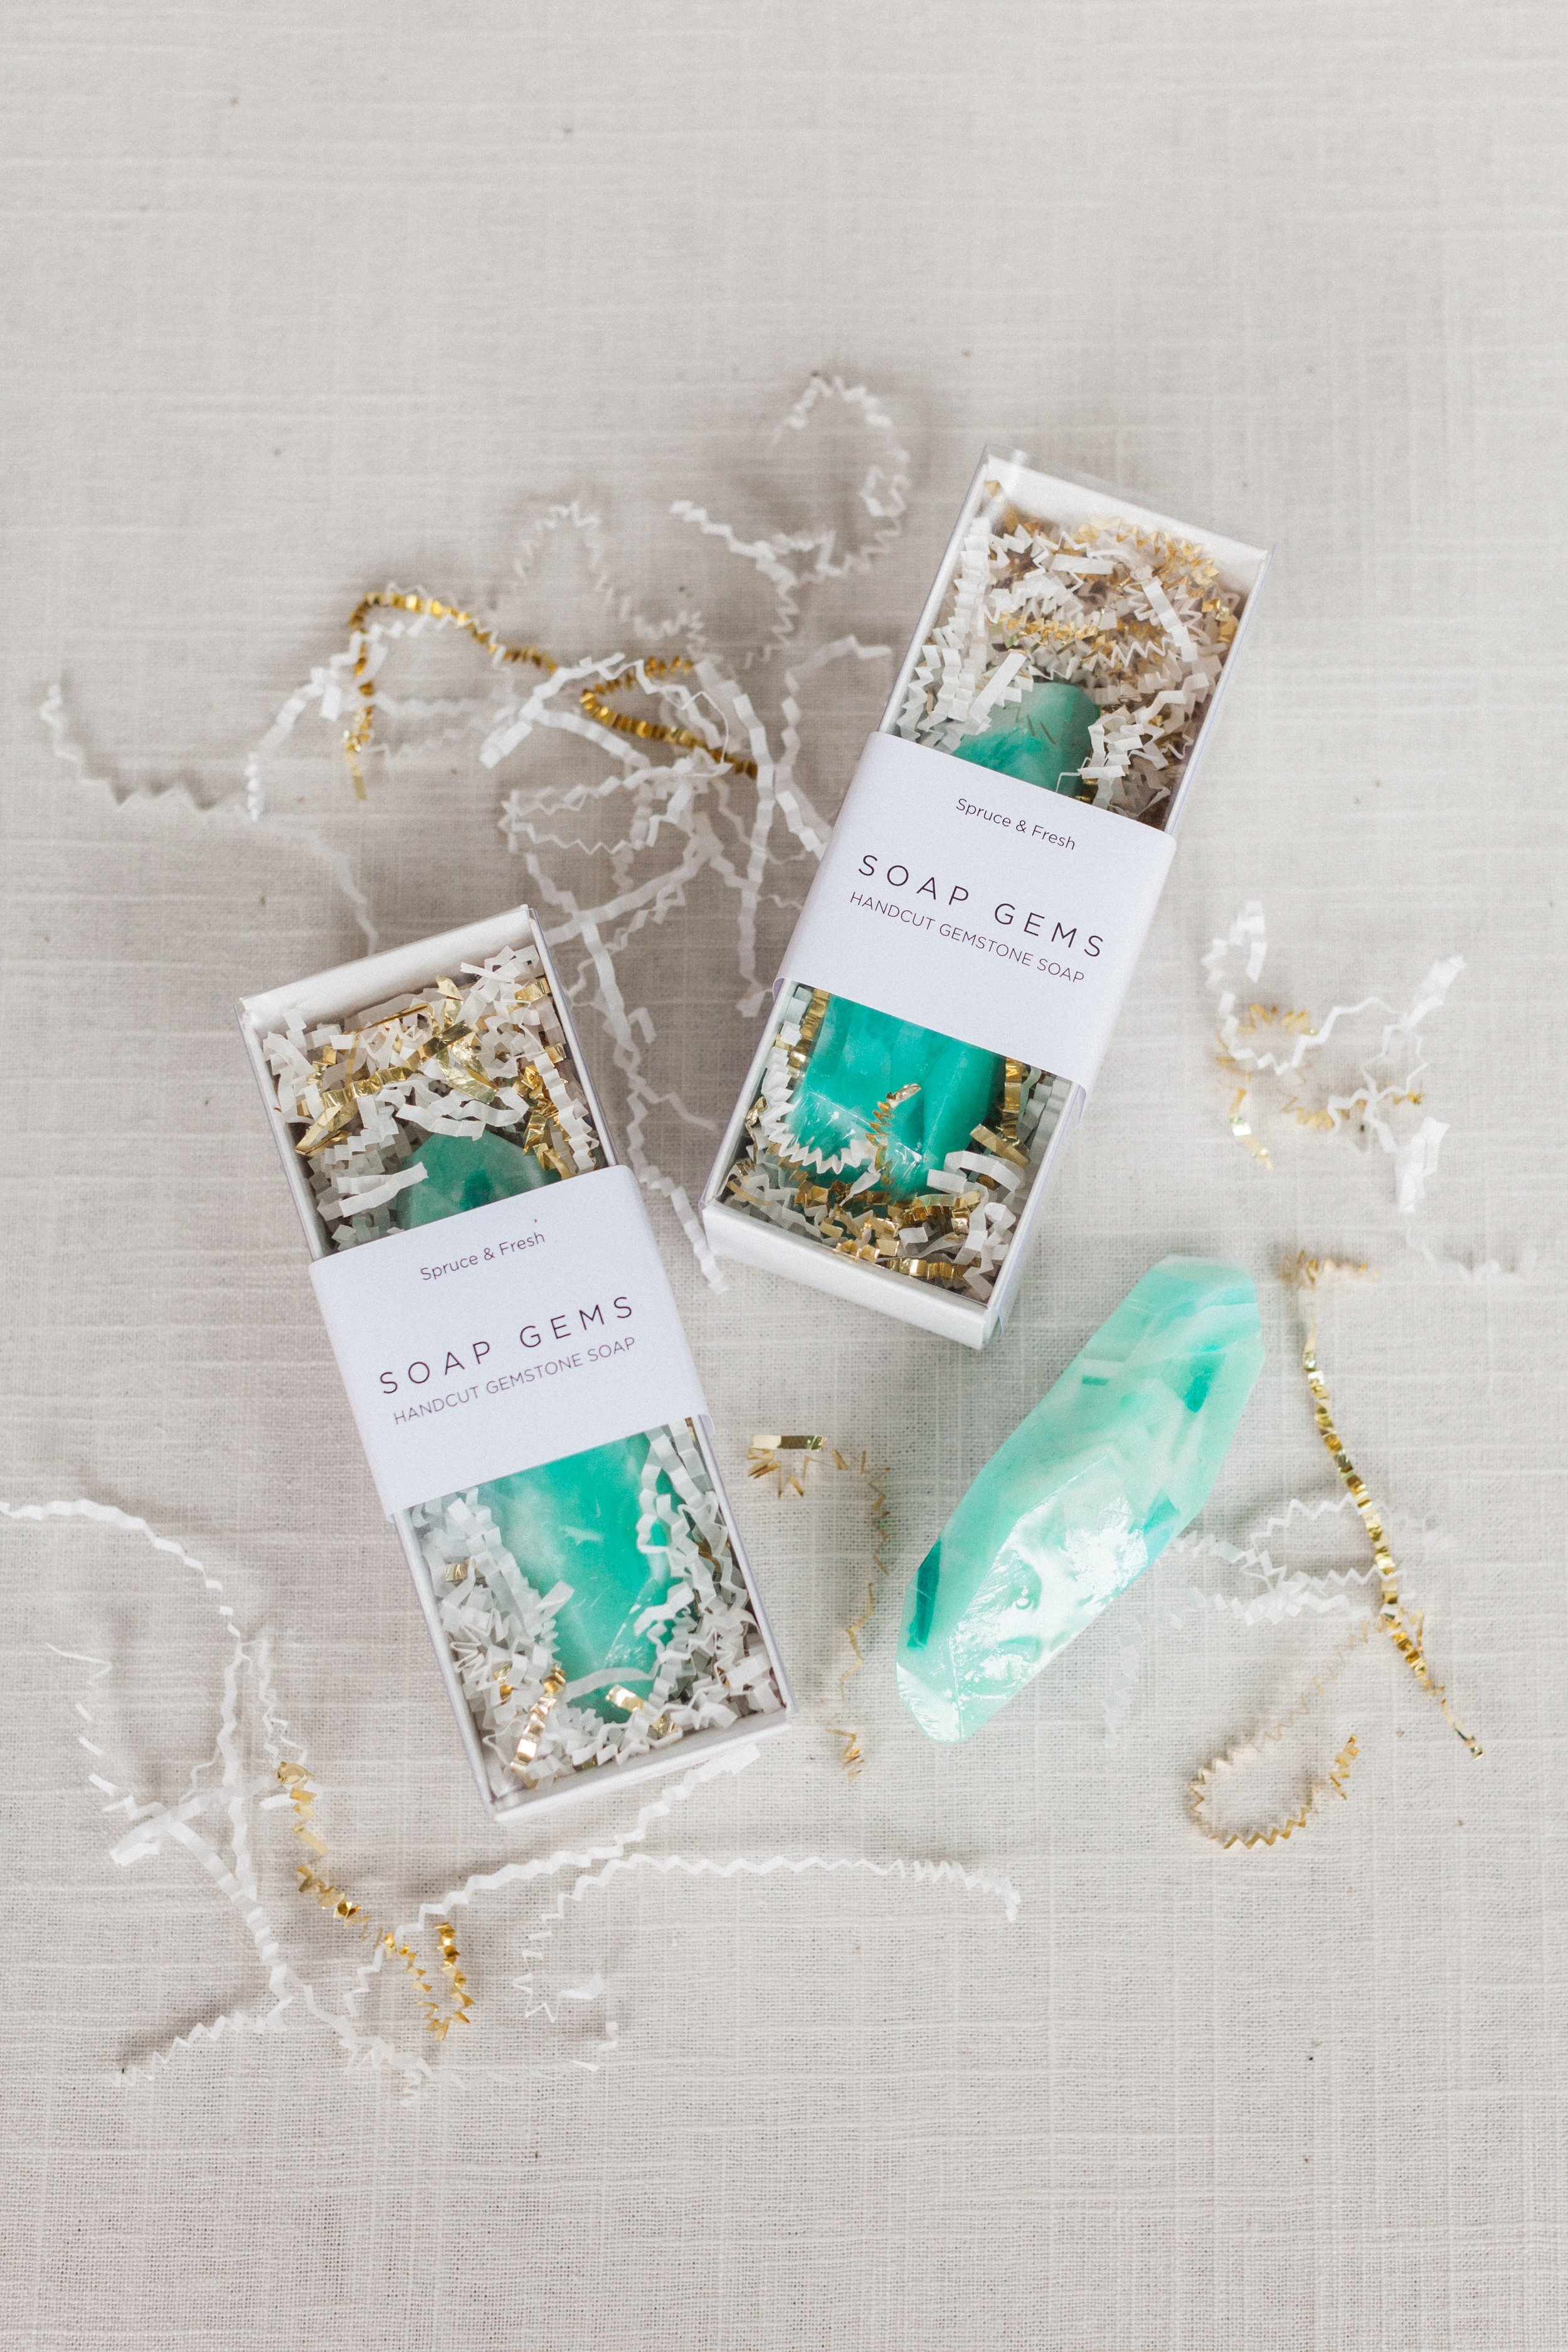 spruce & fresh soaps